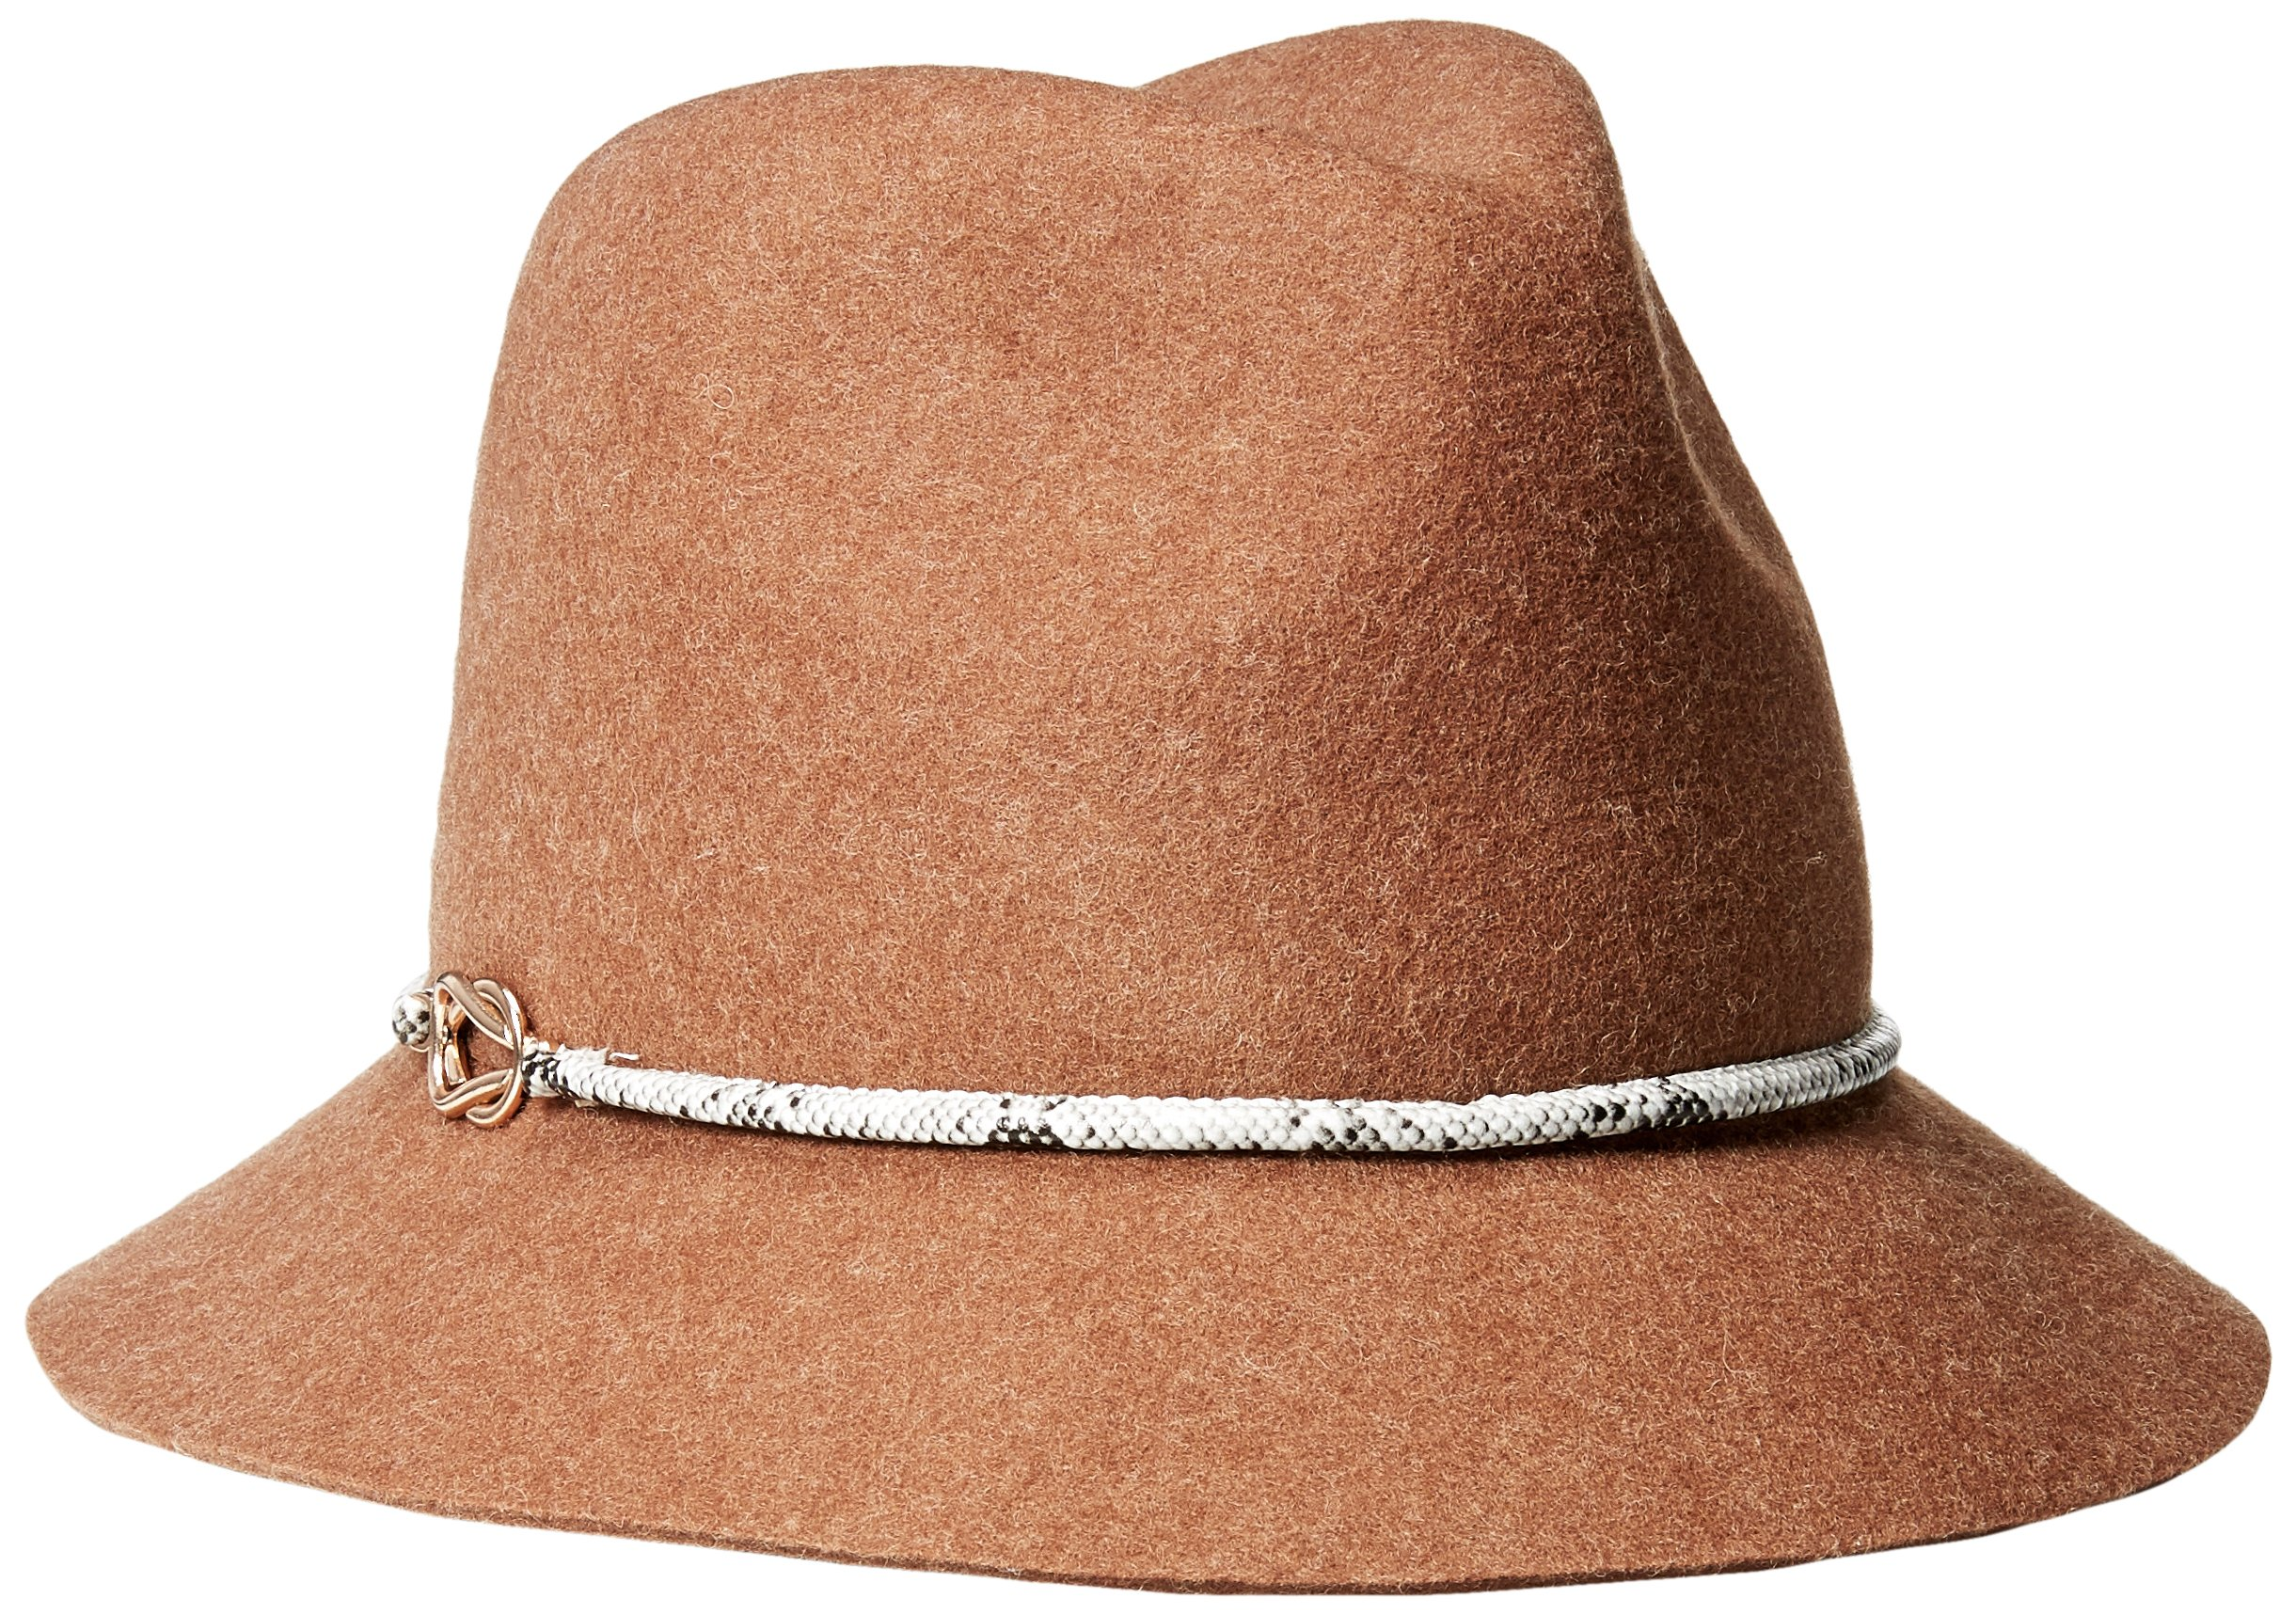 Genie by Eugenia Kim Women's Jordan Wool Felt Fedora Hat with Vegan Leather Cord, Fawn, One Size